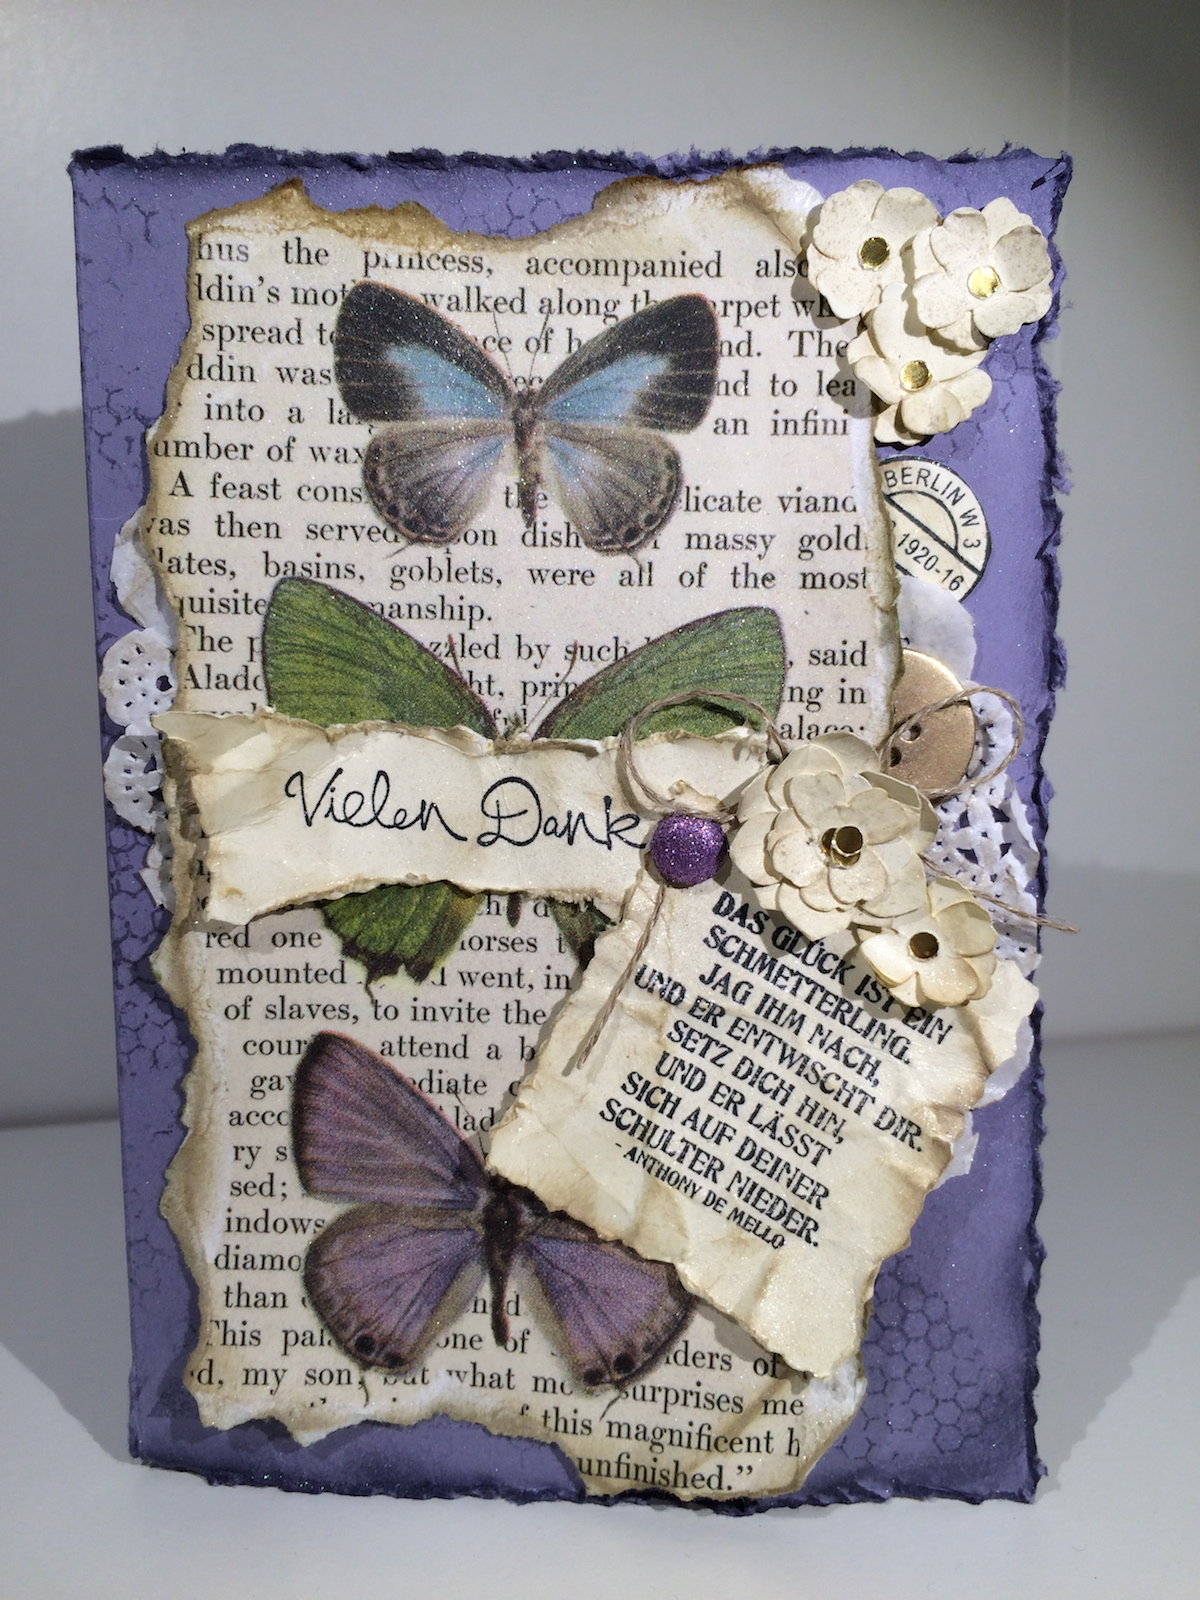 Stampin up Schmetterlingsgruß Butterfly Basics Karte Card Blauregen Wisteria Wonder BoBunny enchanted garden